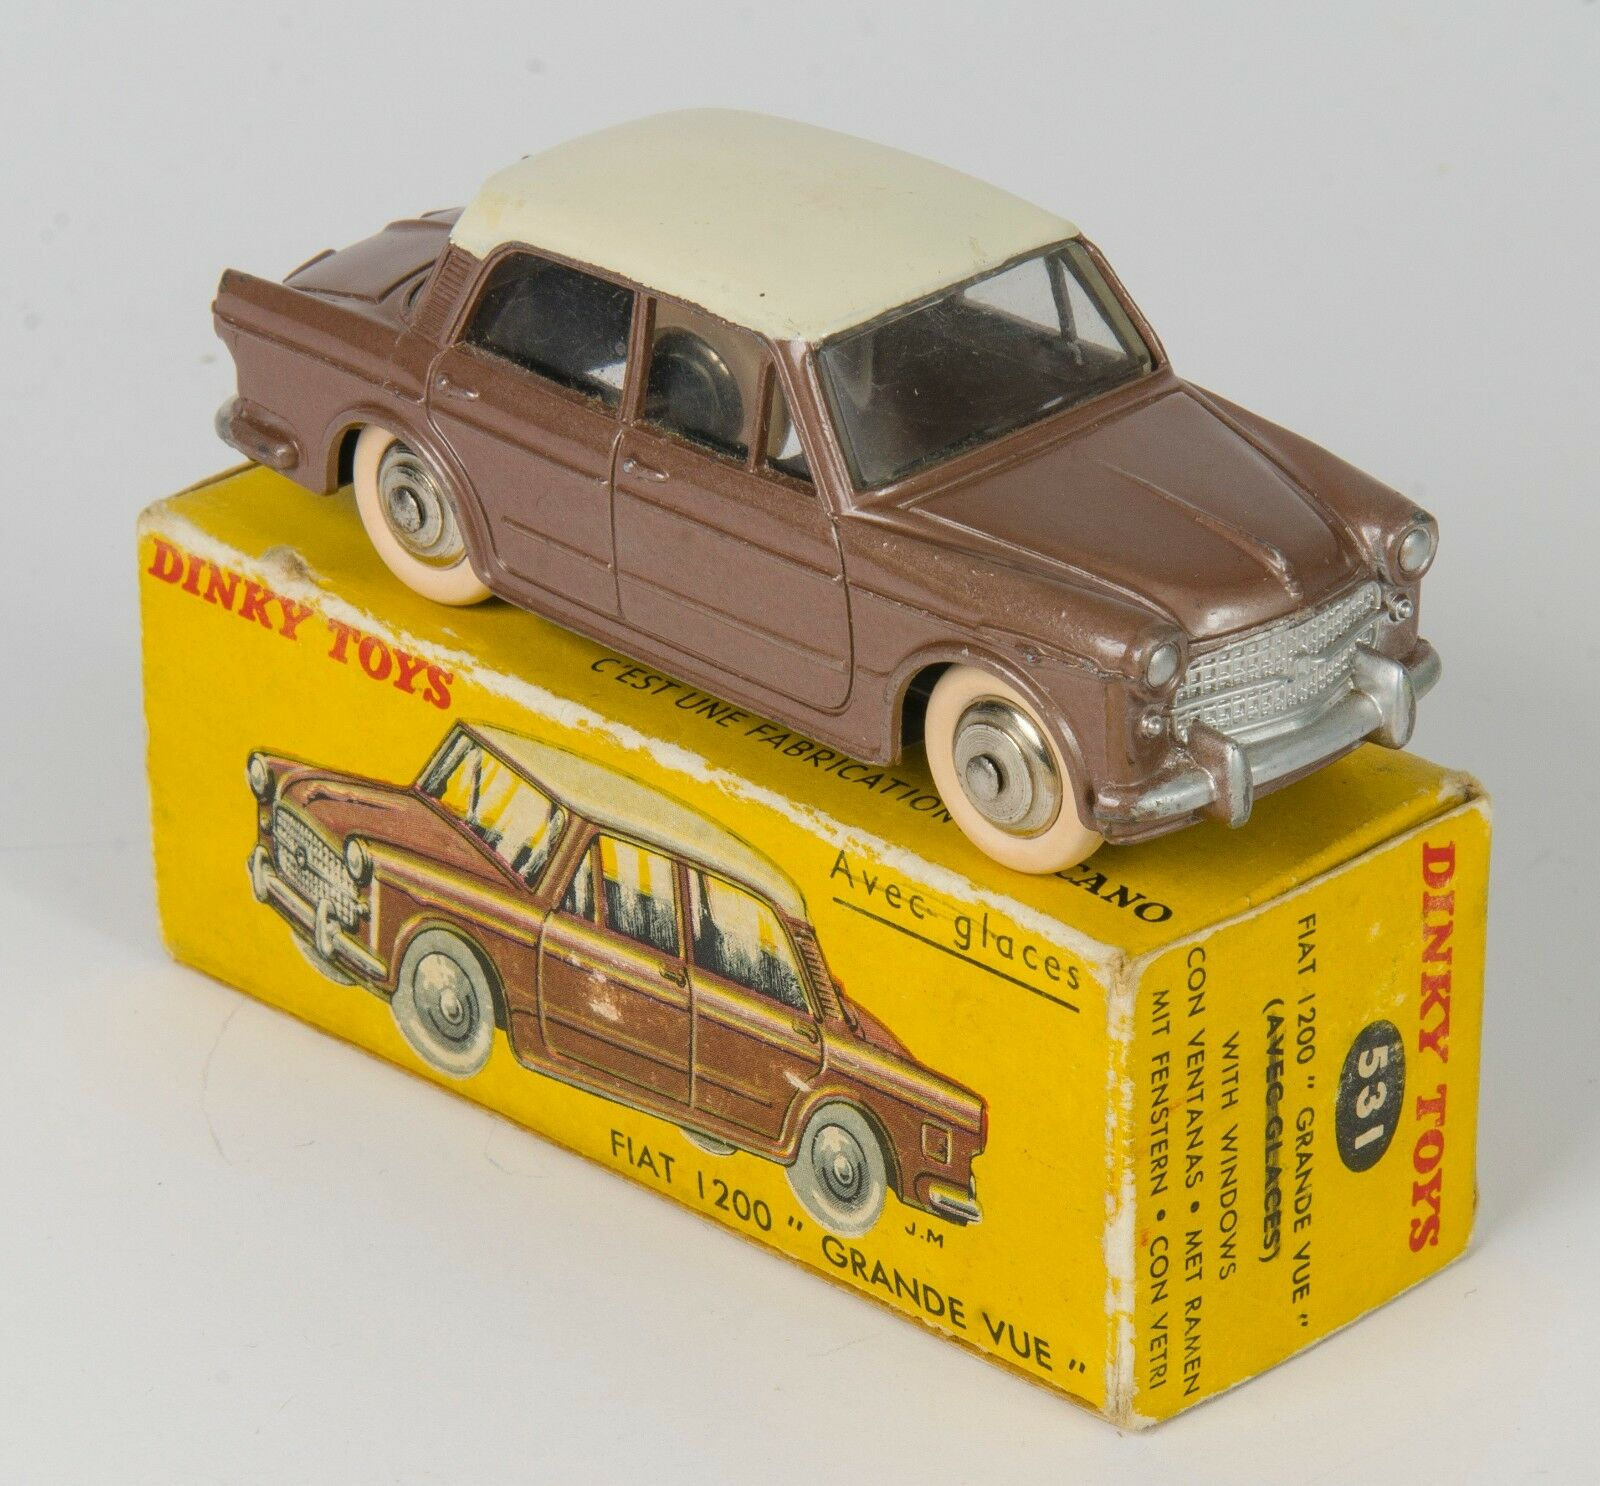 FRENCH Dinky 531 Fiat 1200 'Grande Vue'. Near-Mint Boxed. Original 1950's